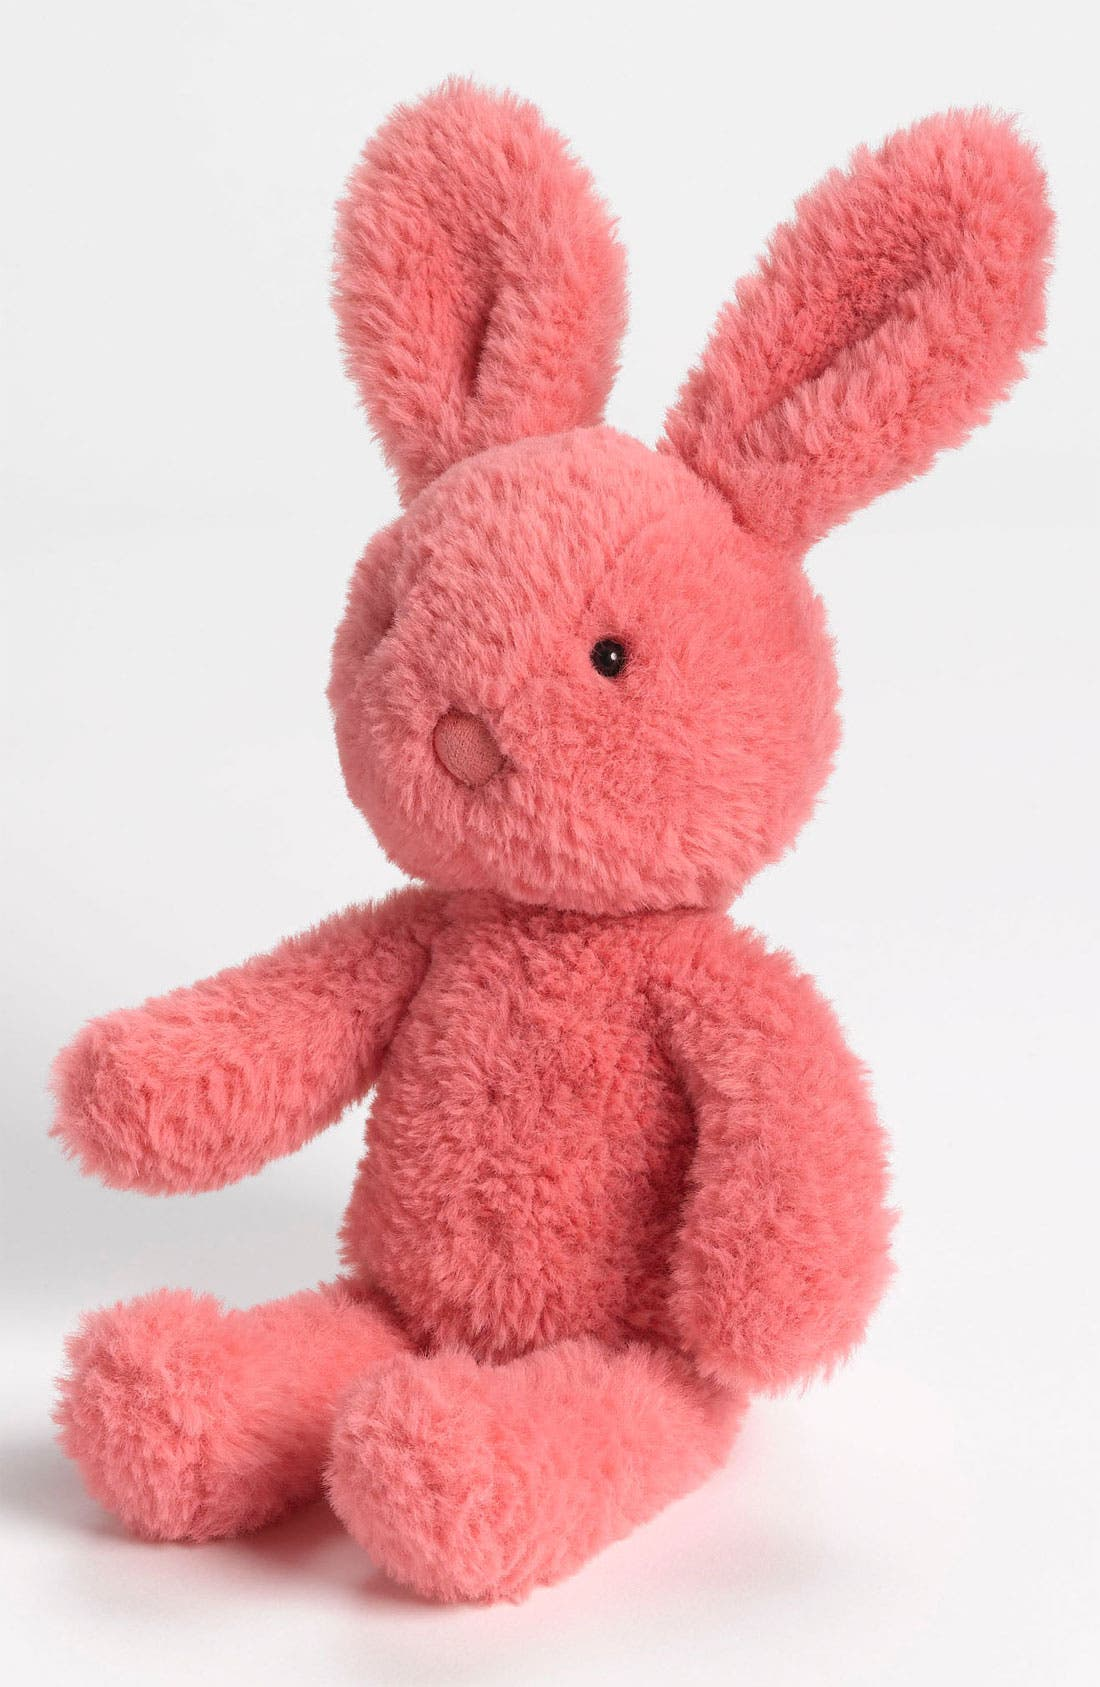 Alternate Image 1 Selected - Jellycat Bunny Stuffed Animal